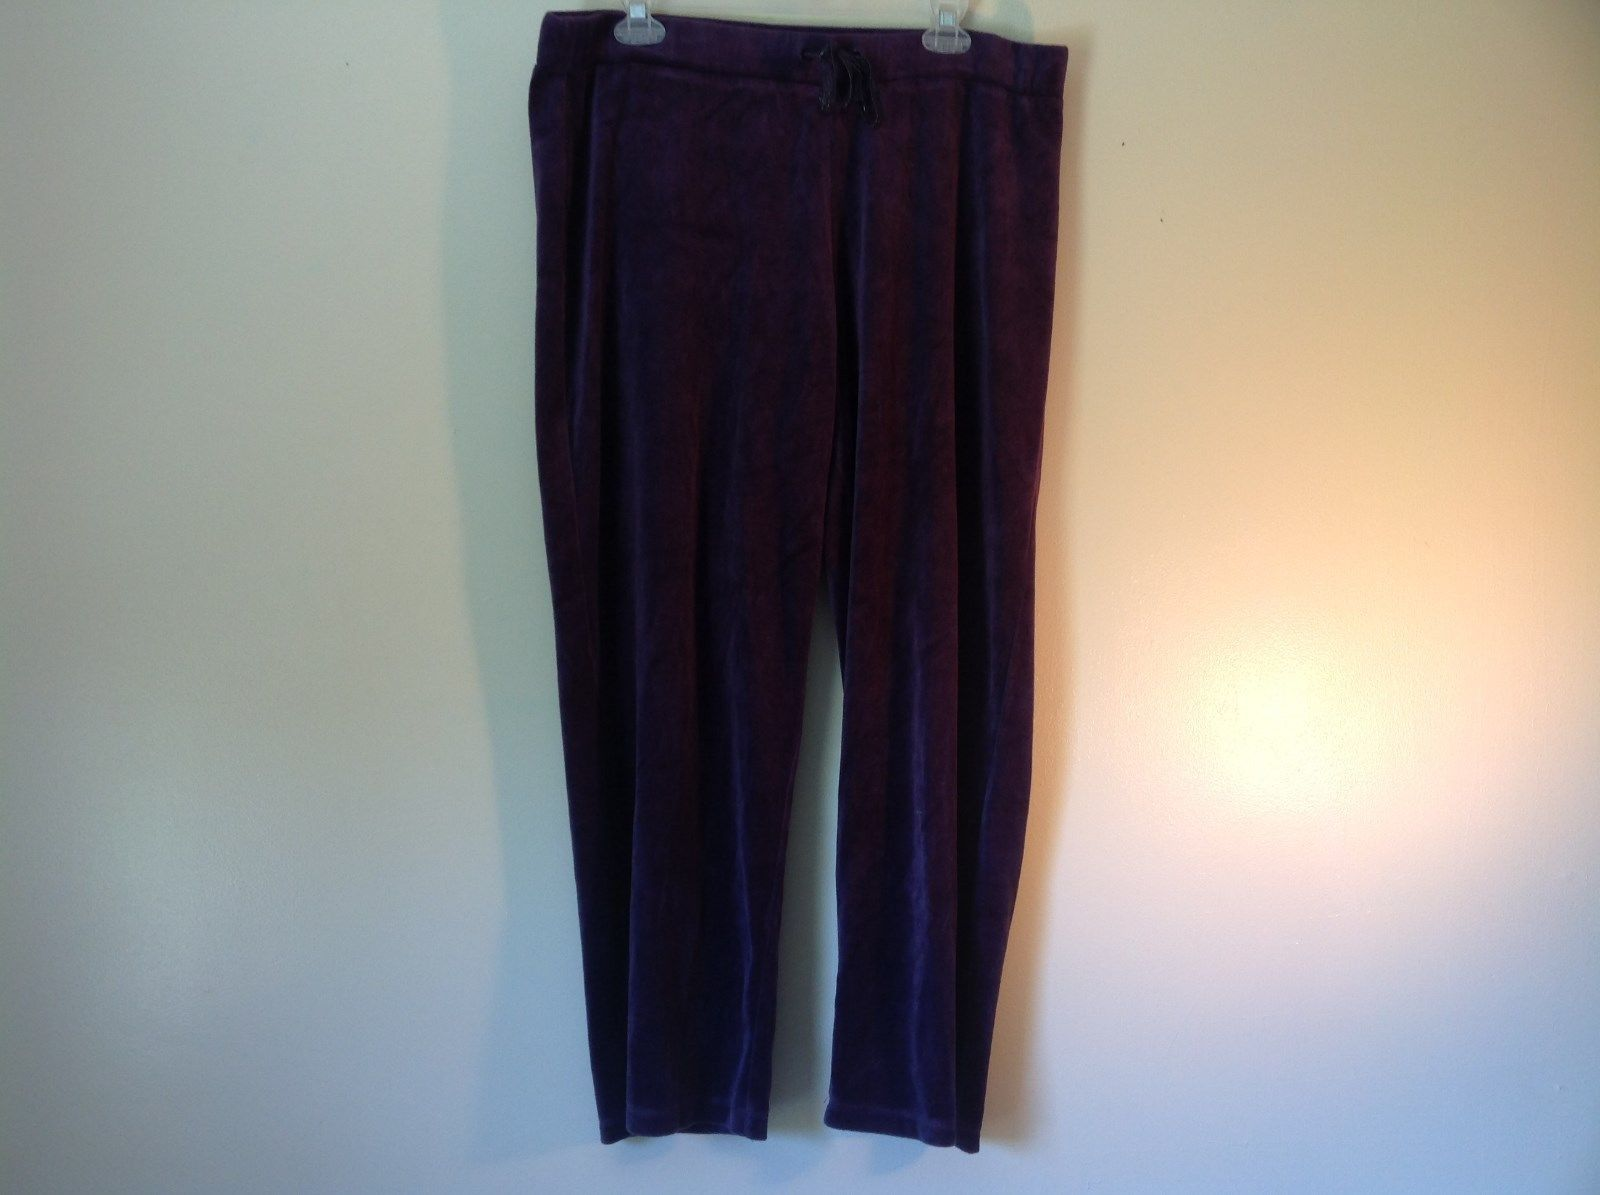 Purple Velvet White Stag Sweat Pants Tie at Waist for Adjustment Size XL